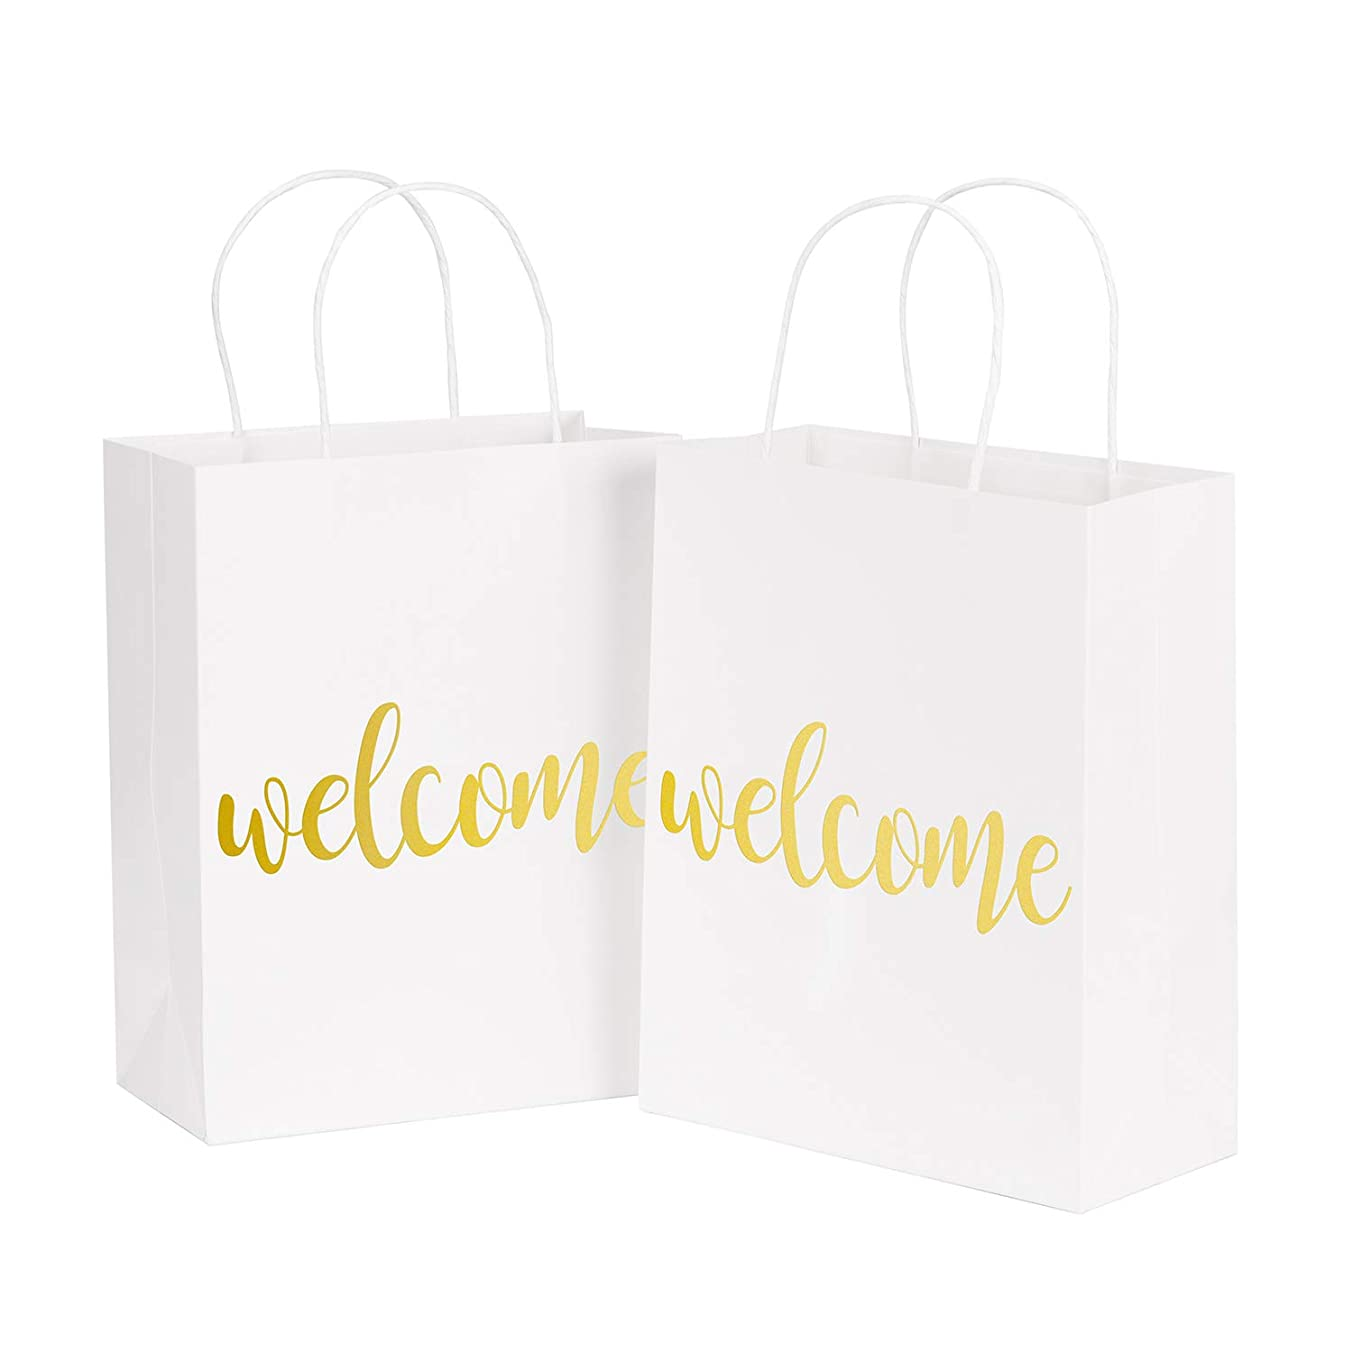 LaRibbons Medium Welcome Gift Bags - Gold Foil White Paper Bags with Handles for Wedding, Birthday, Baby Shower, Party Favors - 25 Pack - 8